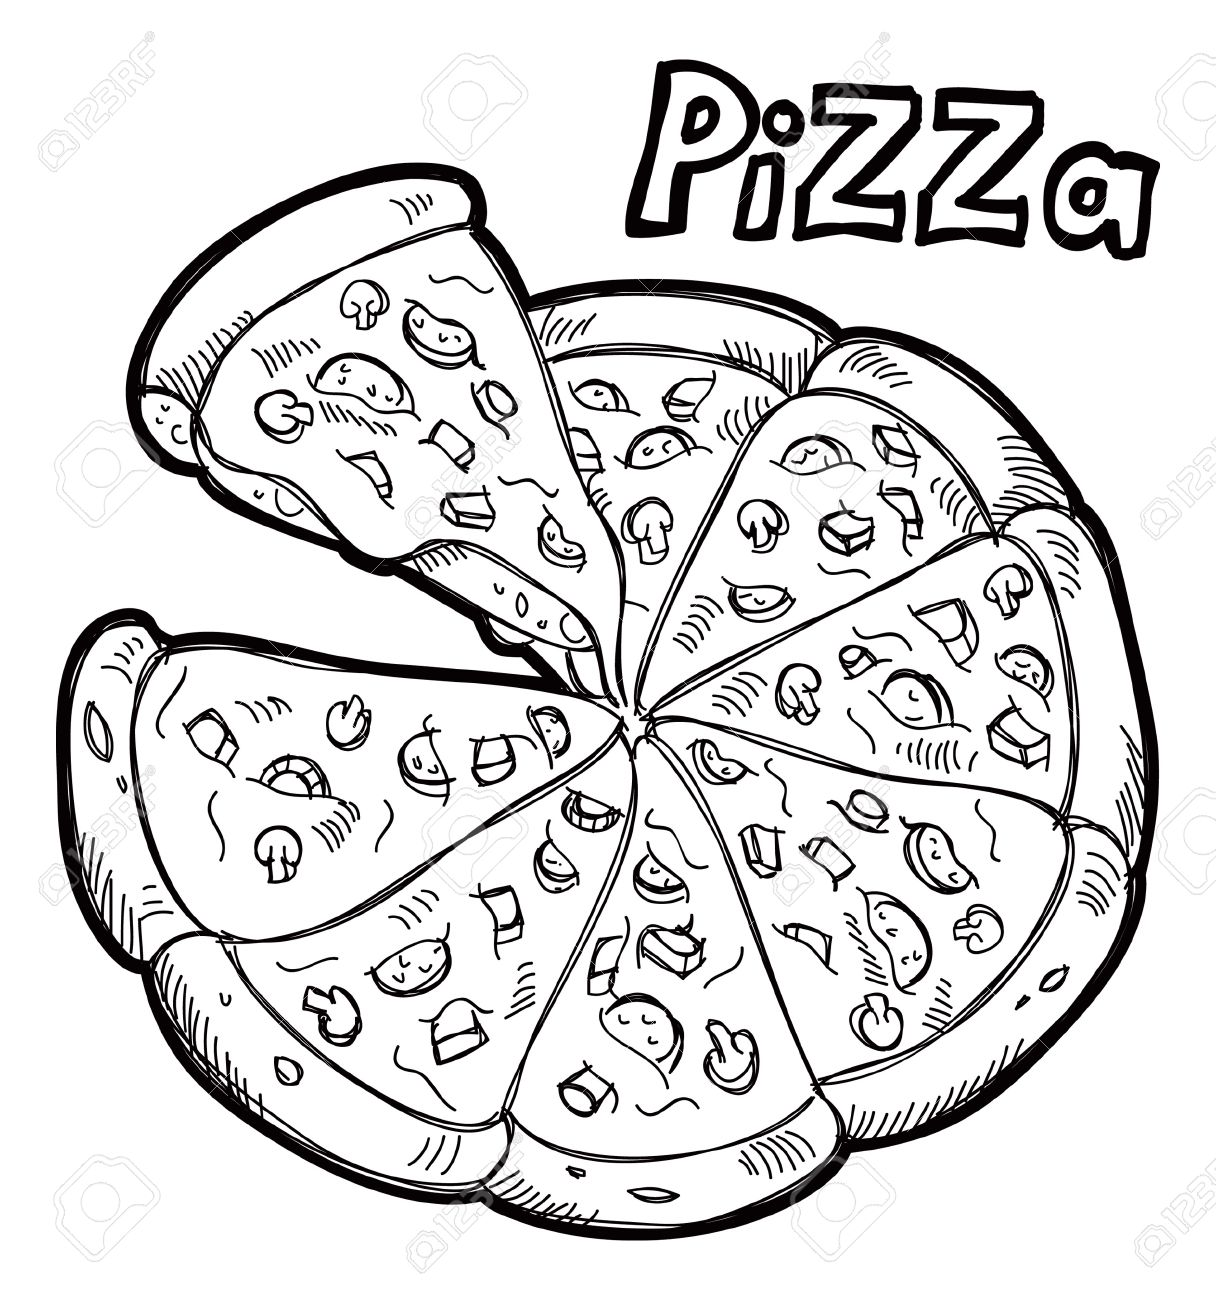 Best Pizza Clipart Black And White #6397 - Clipartion.com